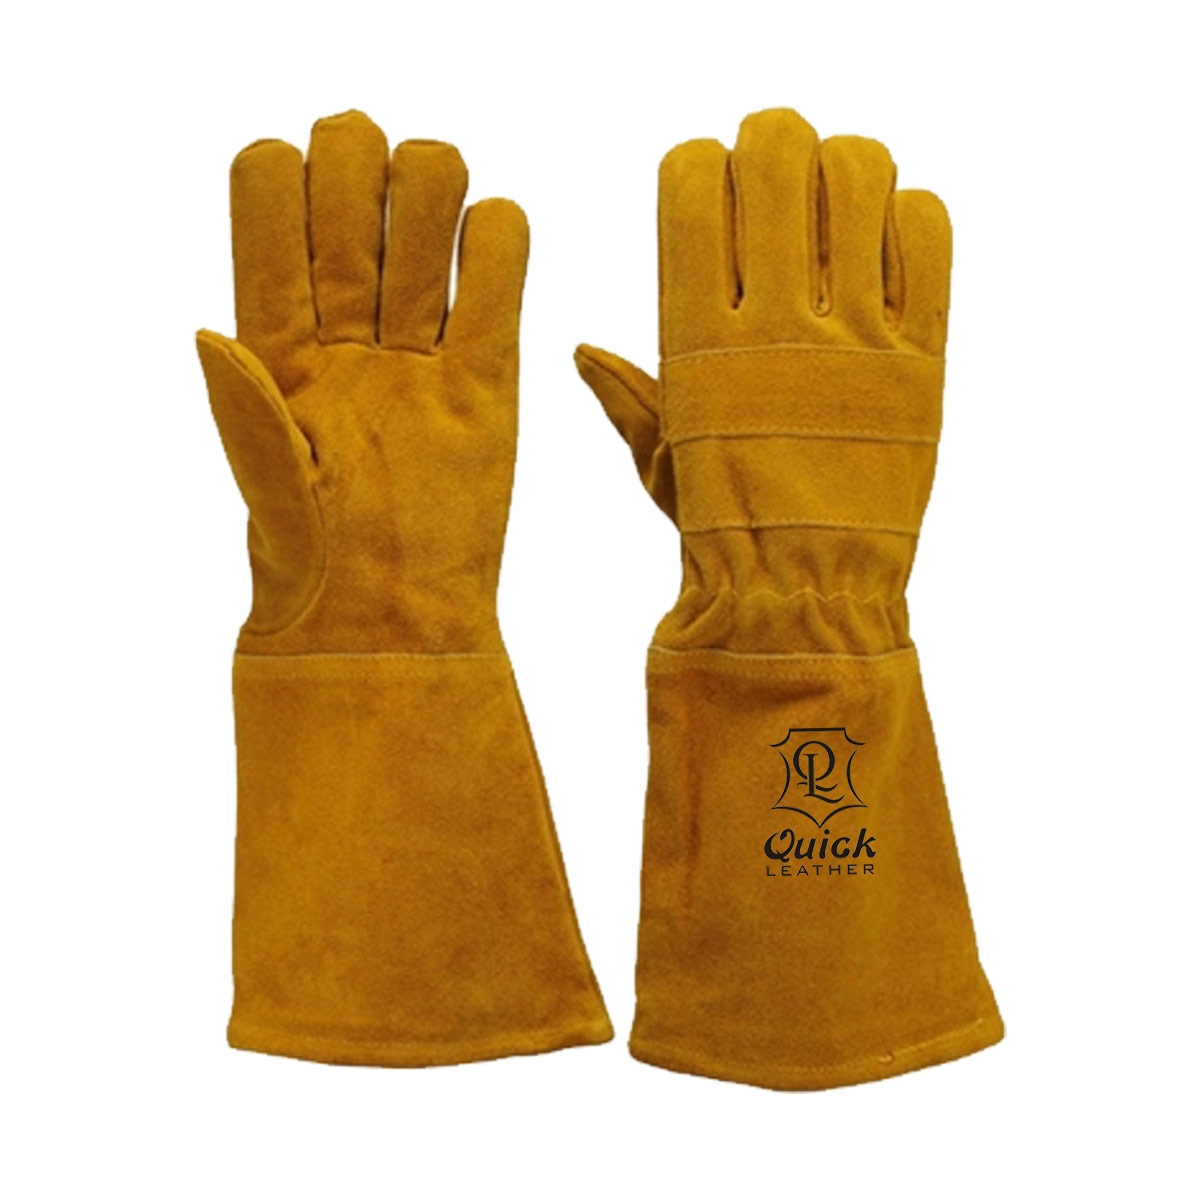 Welding gloves are excellent for use when welding in dry and oily conditions QL 212